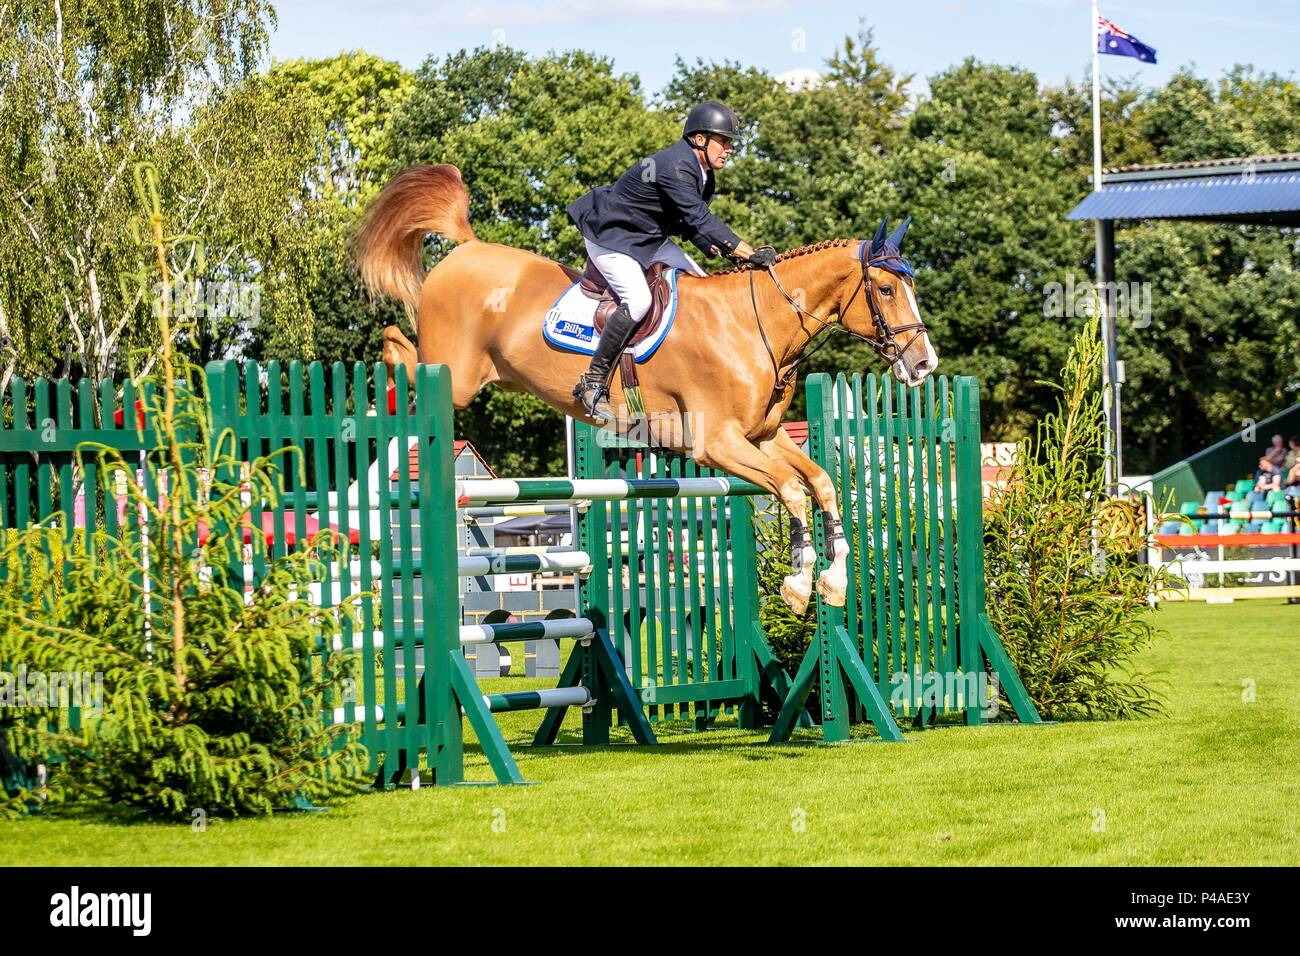 William Funnell  riding Billy Dynamo.  GBR. The Bunn Lesiure Tankard. CSI4*. The Al Shira'aa Hickstead Derby Meeting. Showjumping. The All England Jumping Course. Hickstead. West Sussex. UK. Day 2. 21/06/2018. - Stock Image